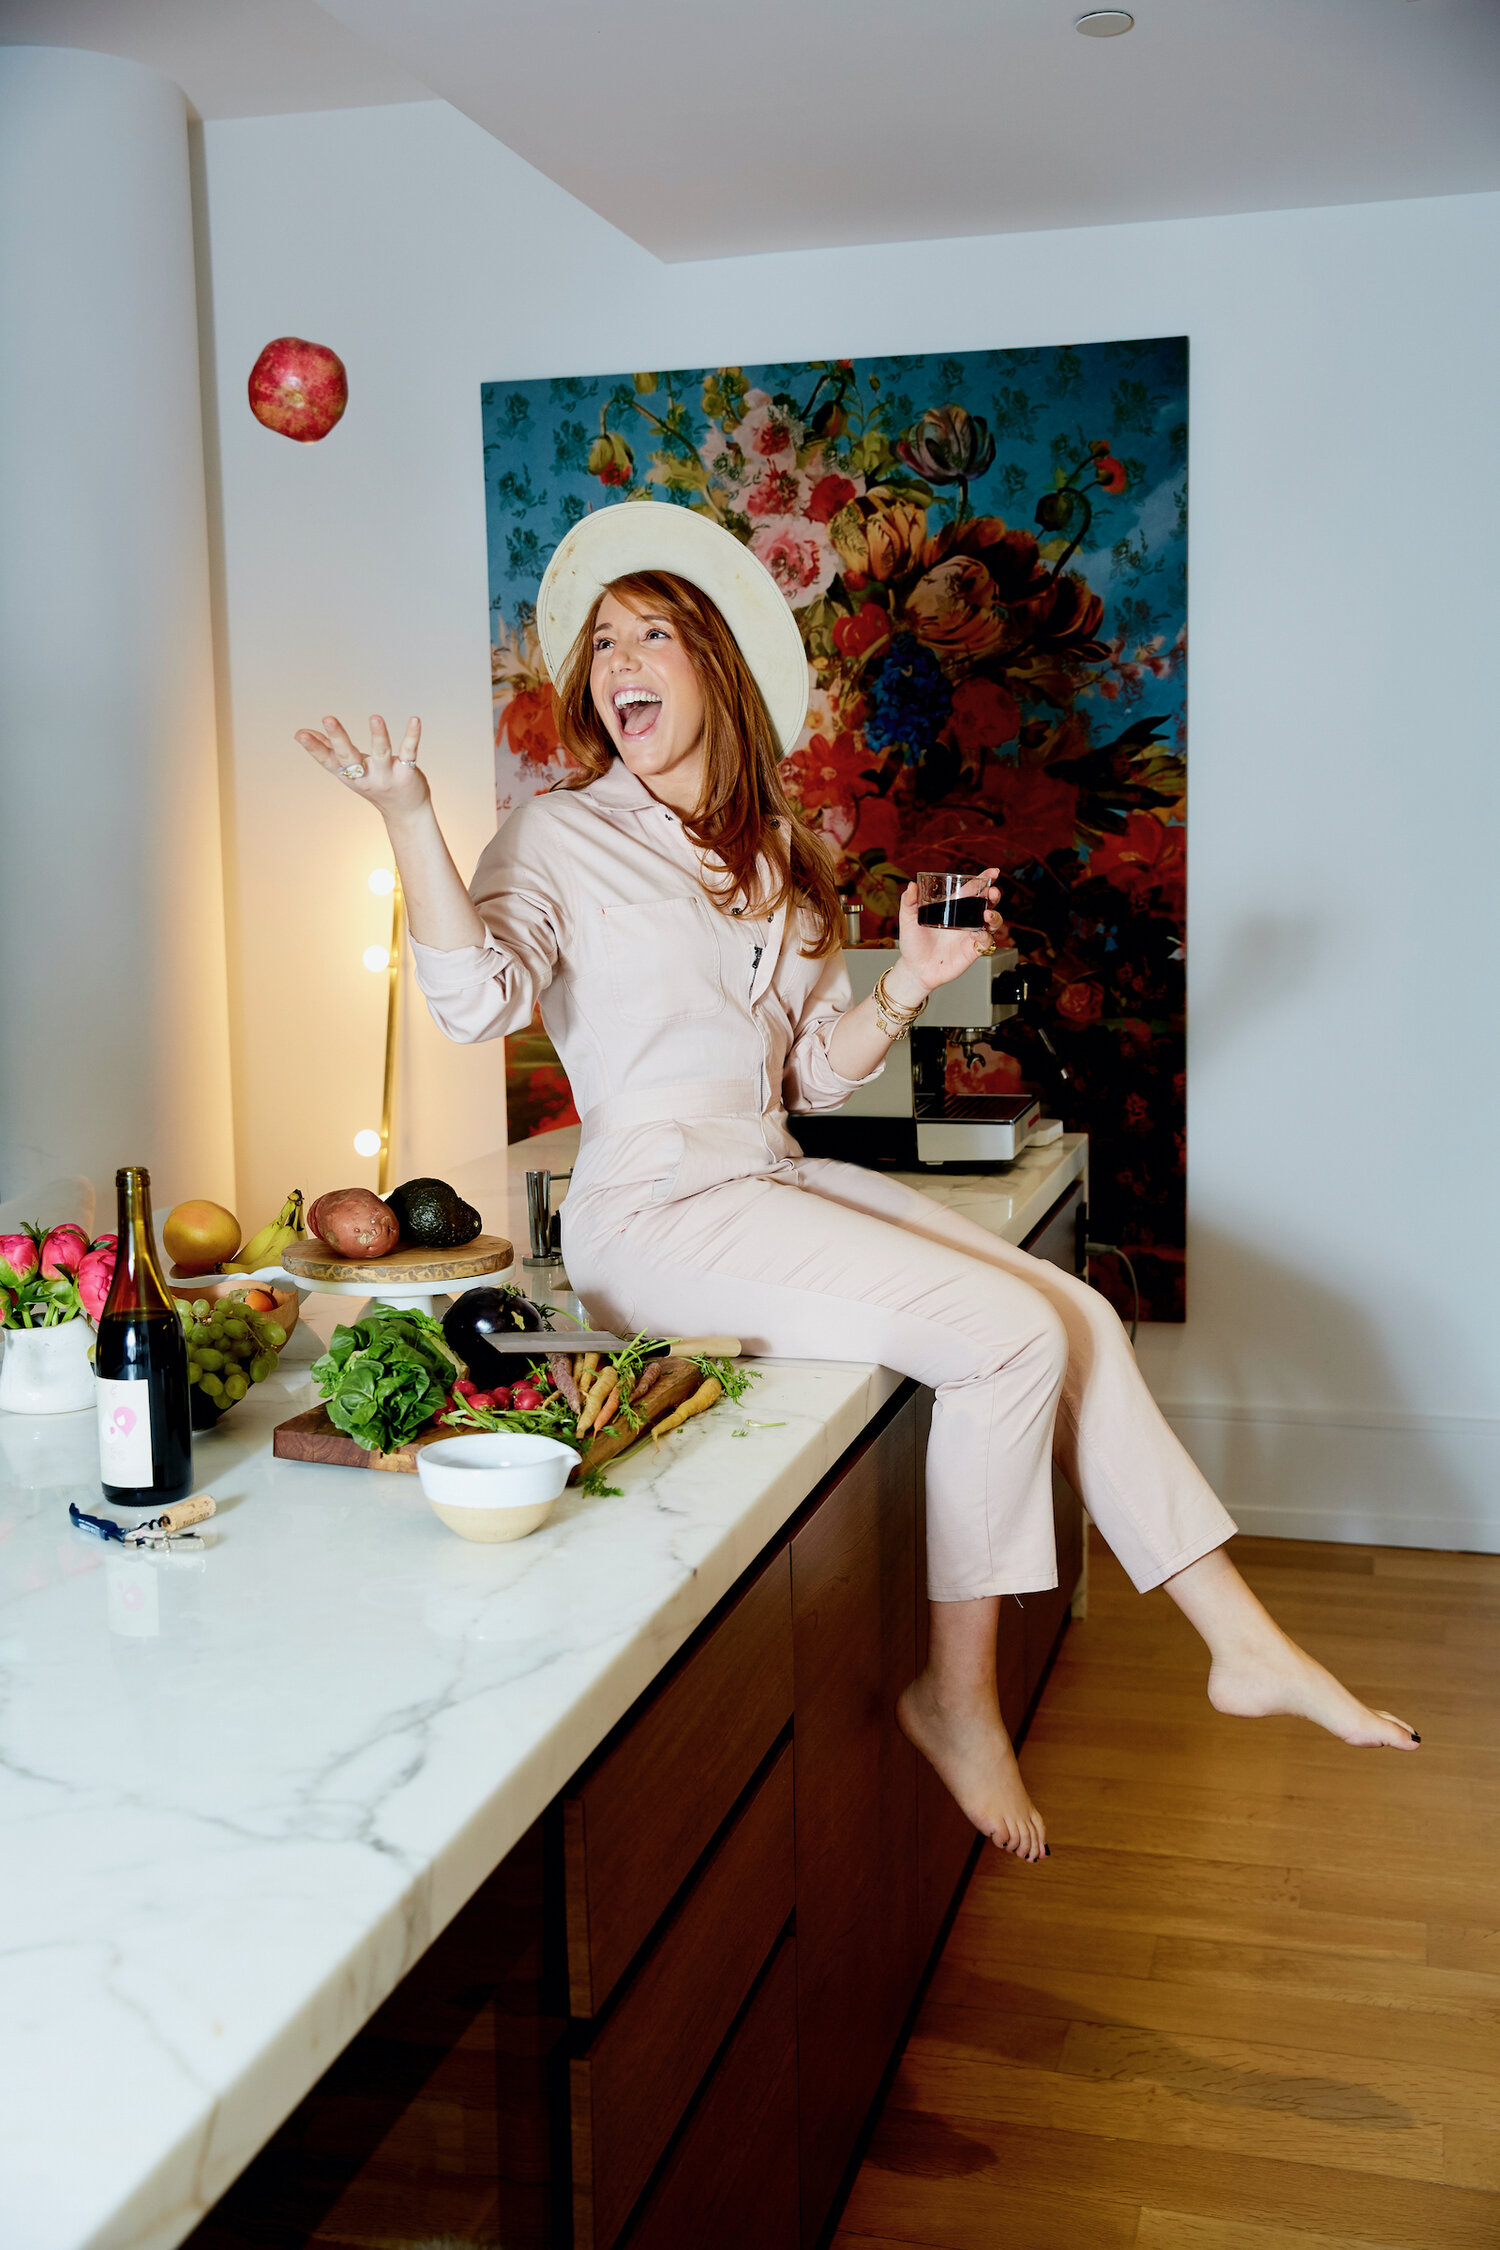 West Bourne Founder Camilla Marcus Shares Her Favorite Nyc Restaurants And Kitchen Gadgets Br The Select 7